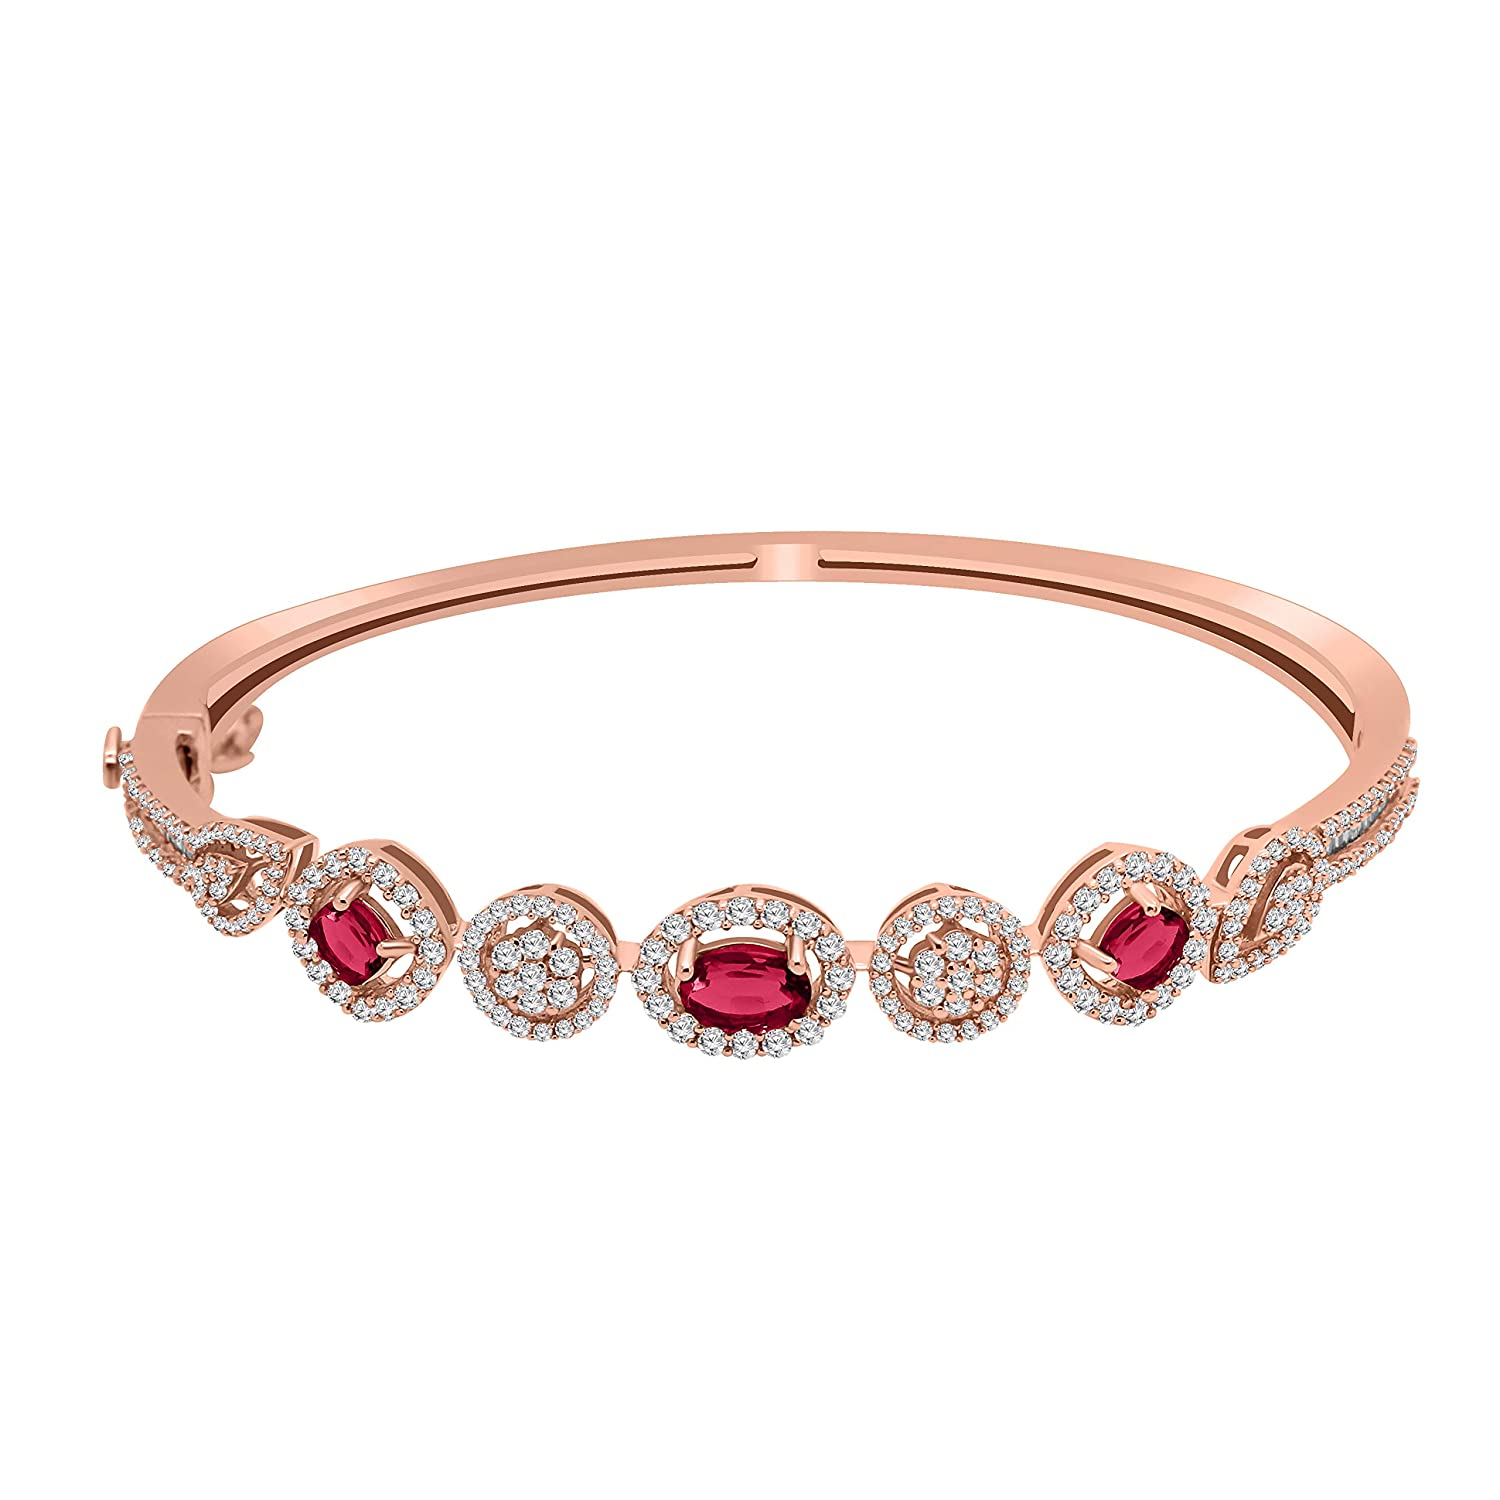 1.08CT Diamond /& Ruby Bangle in 14K Gold Over Best Suited for Parties